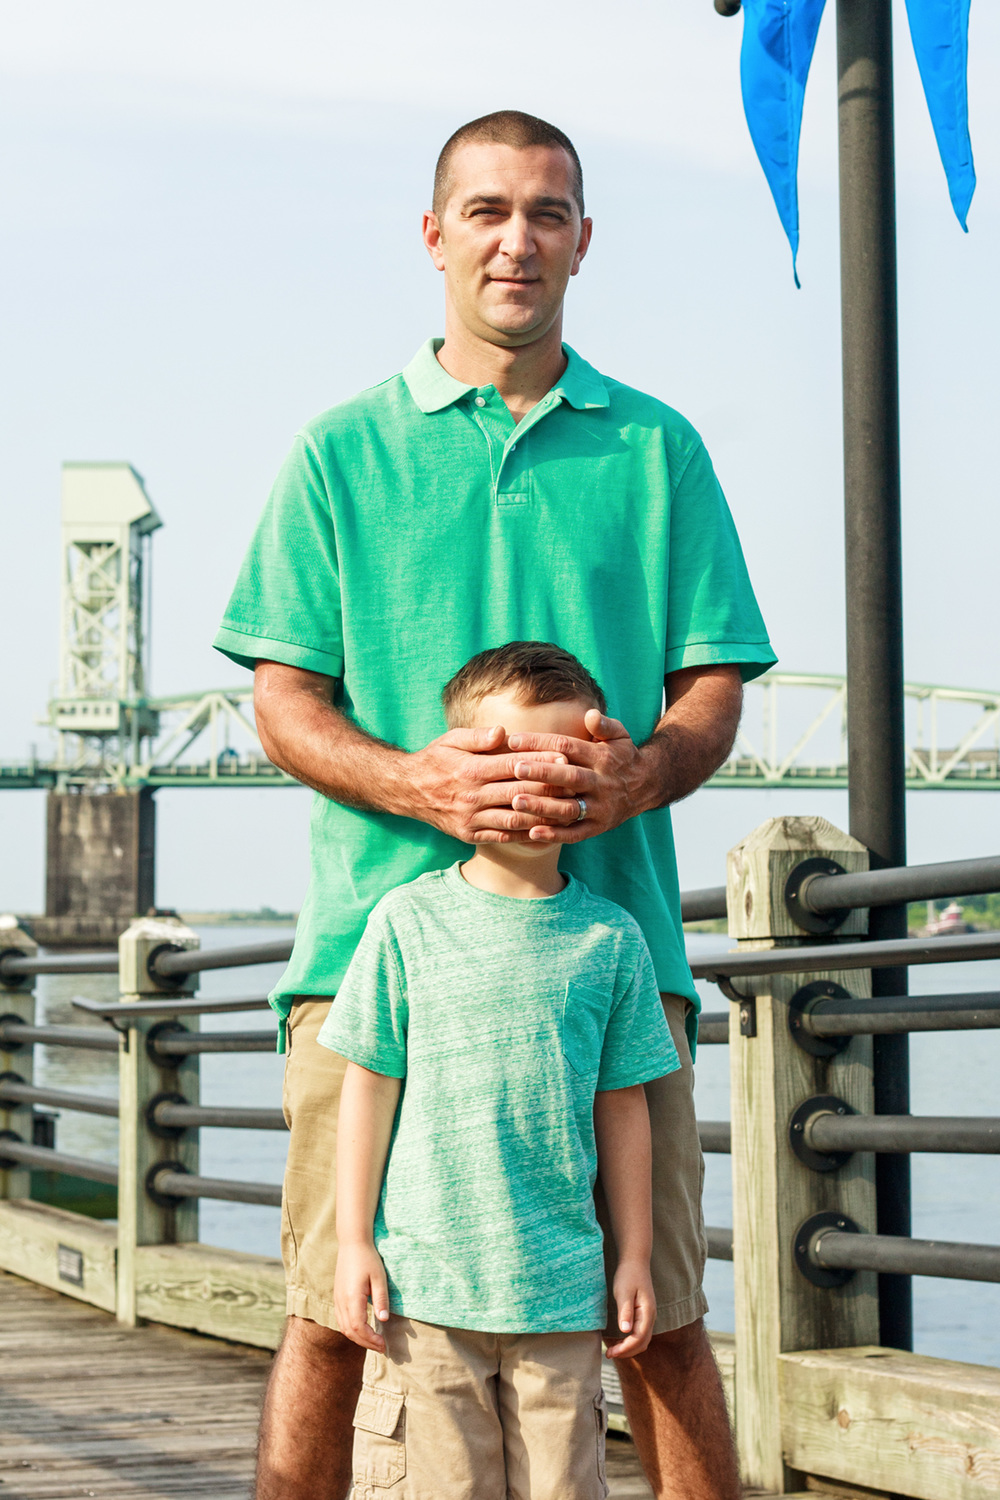 DOWNTOWN_WILMINGTON_FAMILY_PHOTO_TIFFANY_ABRUZZO_PHOTOGRAPHY_53.jpg